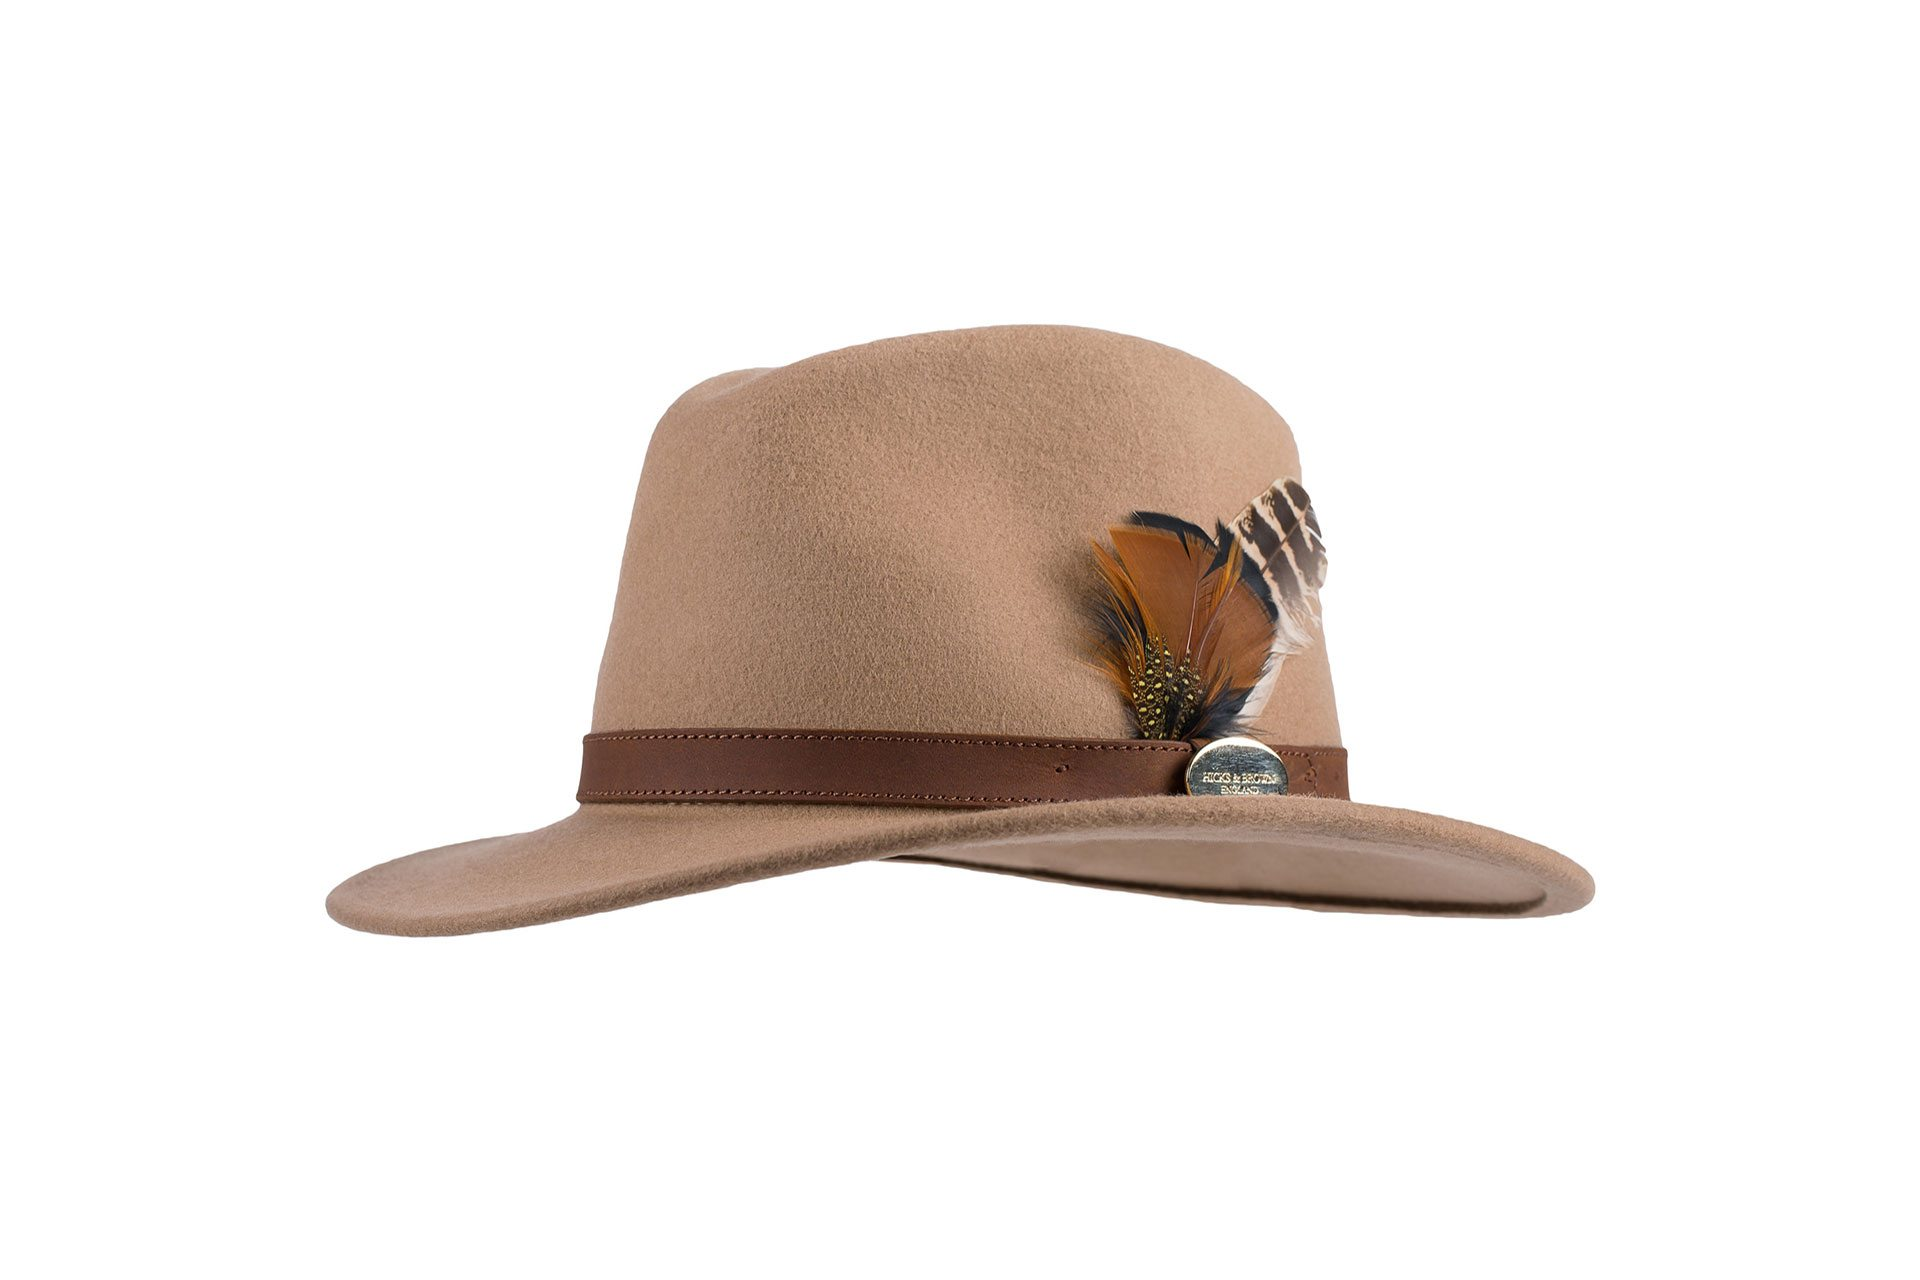 1920x1280 How To Wear Hats The Expert Guide Summer 2017